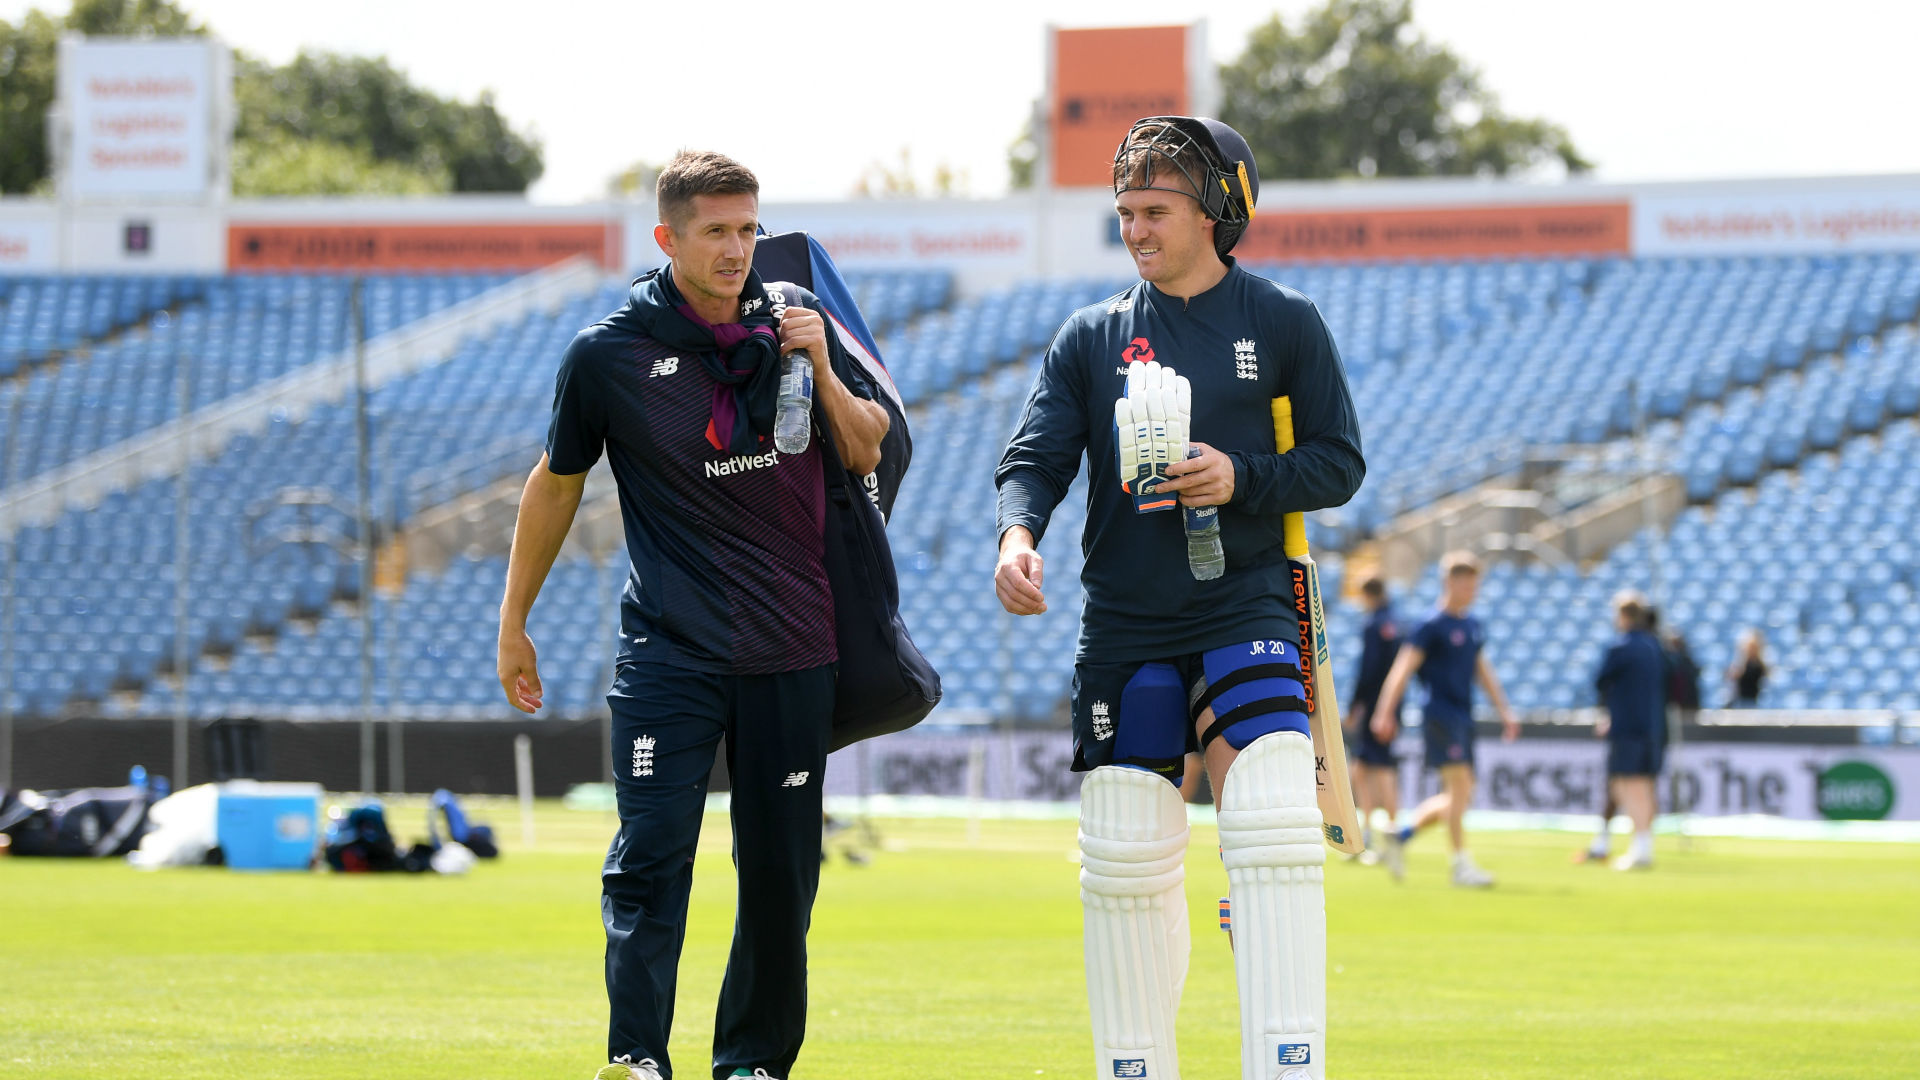 Ashes 2019: Joe Denly set to open for England, confirming Jason Roy switch